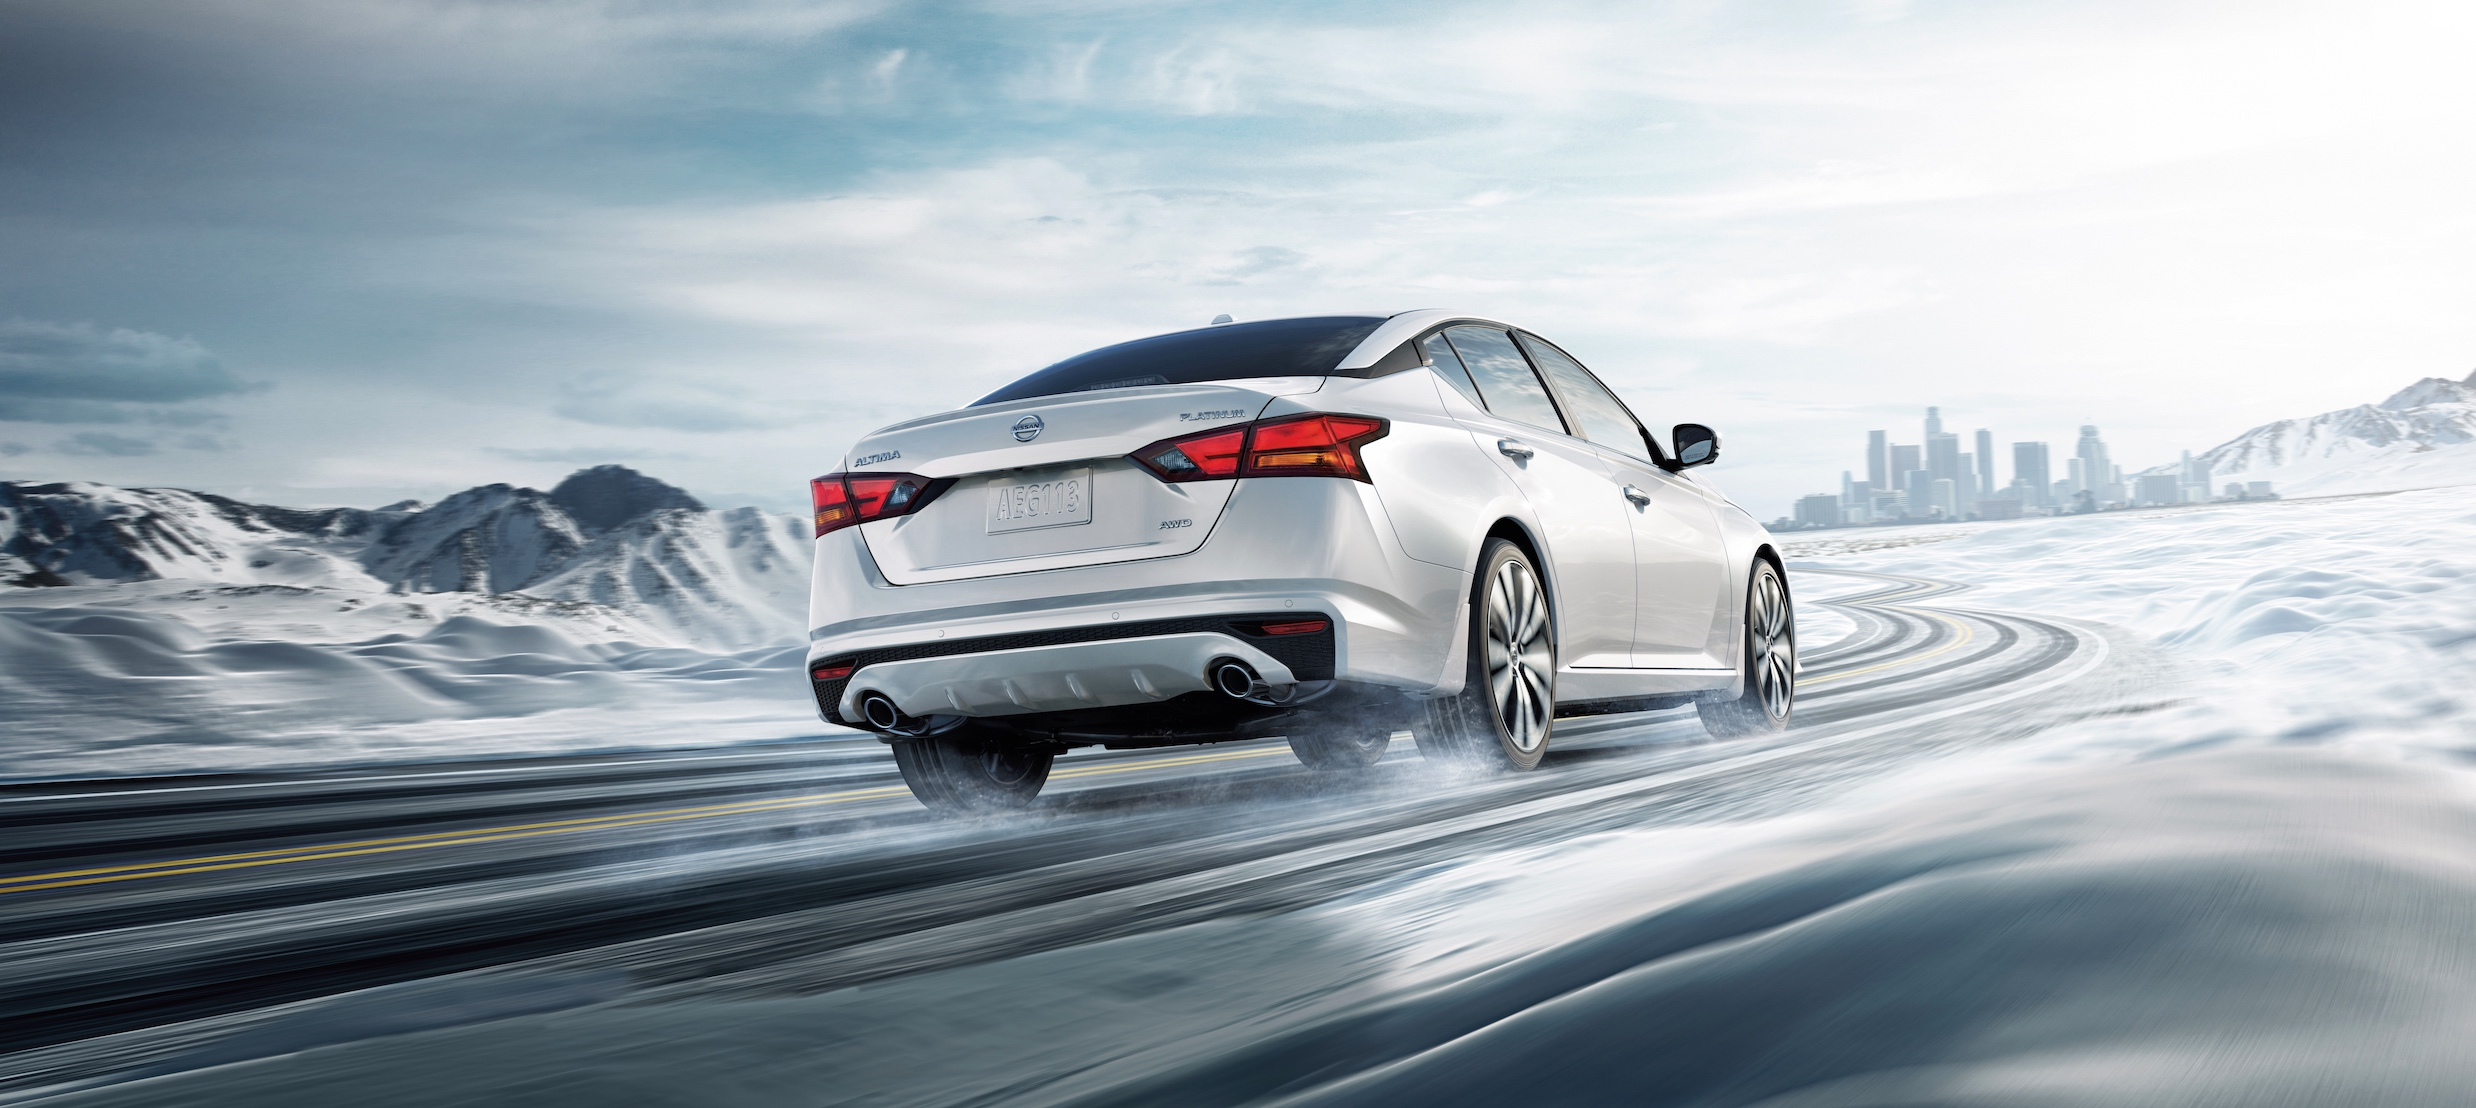 The All Wheel Drive Nissan Altima - Valley Nissan Blog